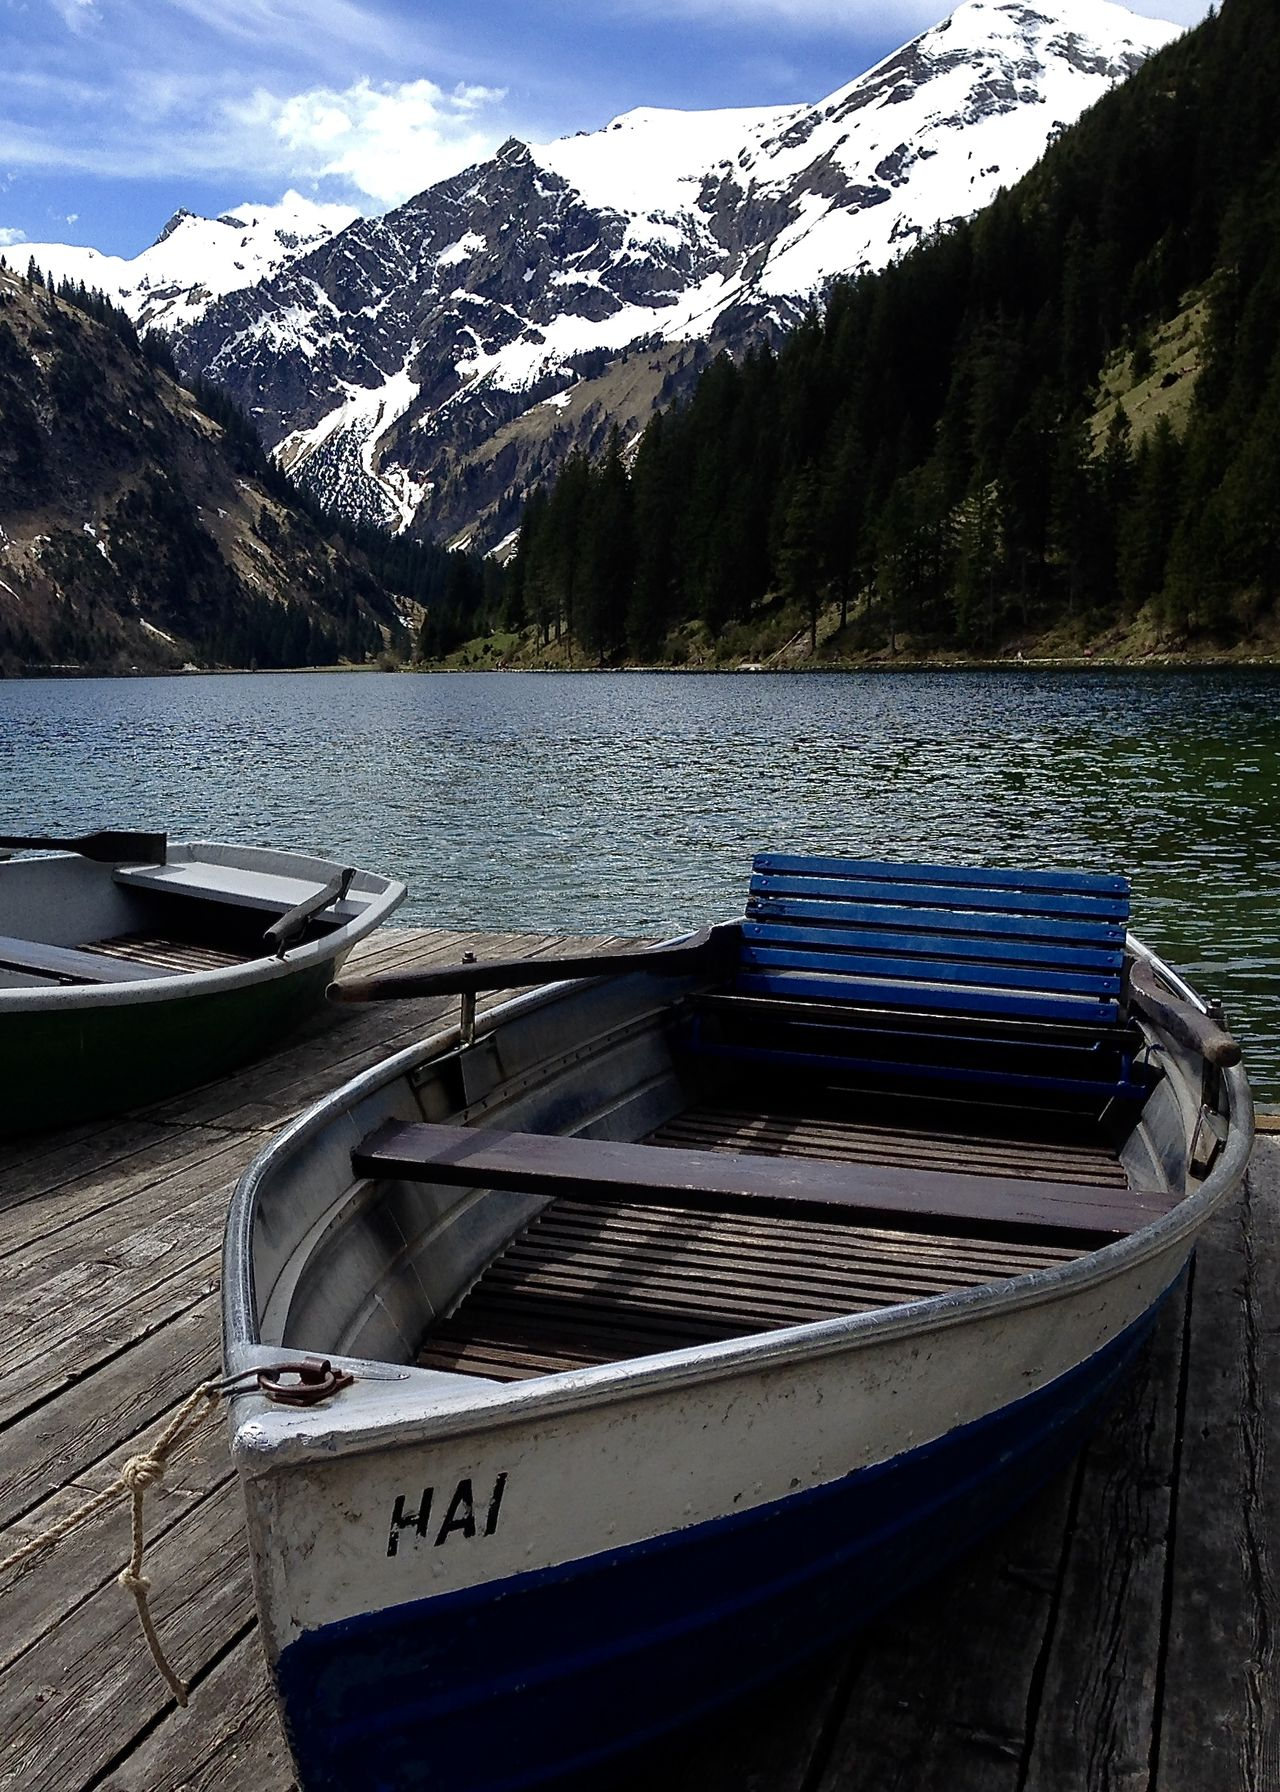 boats at lake in the alps, vilsalpsee Beauty In Nature Boat Forest Greenery Holiday Lake Moored Mountain Mountain Range Nature Nautical Vessel Outdoors Scenics Sky Snow Spring Tannheimer Tal Tranquil Scene Transportation Travel Vilsalpsee Water Wooden The Great Outdoors - 2017 EyeEm Awards